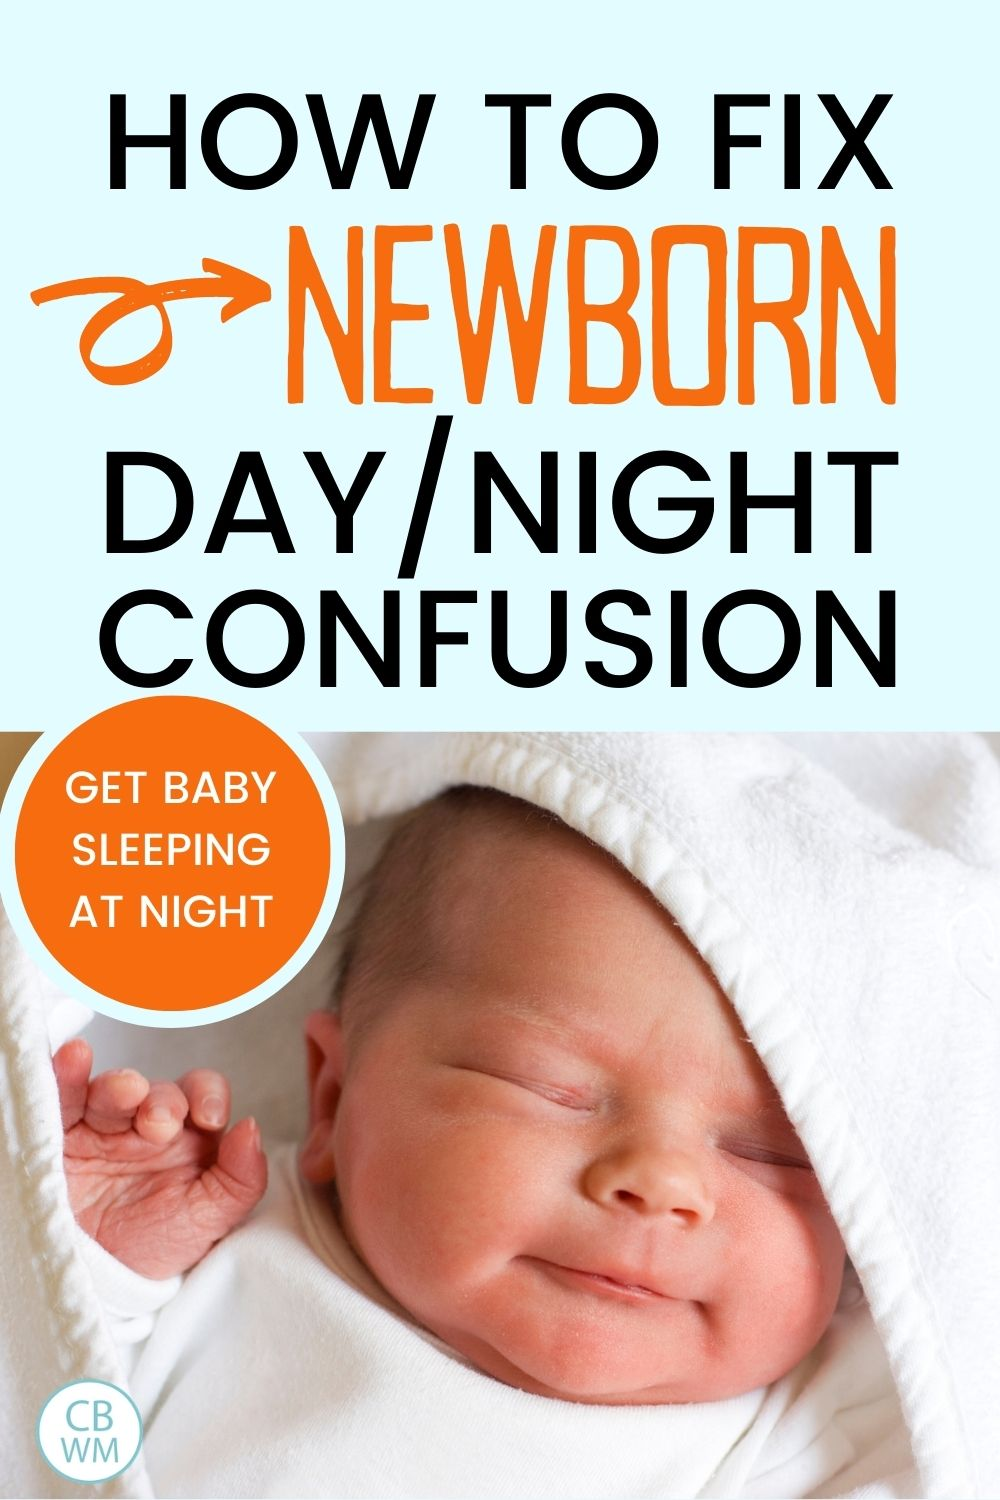 How to fix newborn day/night confusion with a picture of a newborn baby